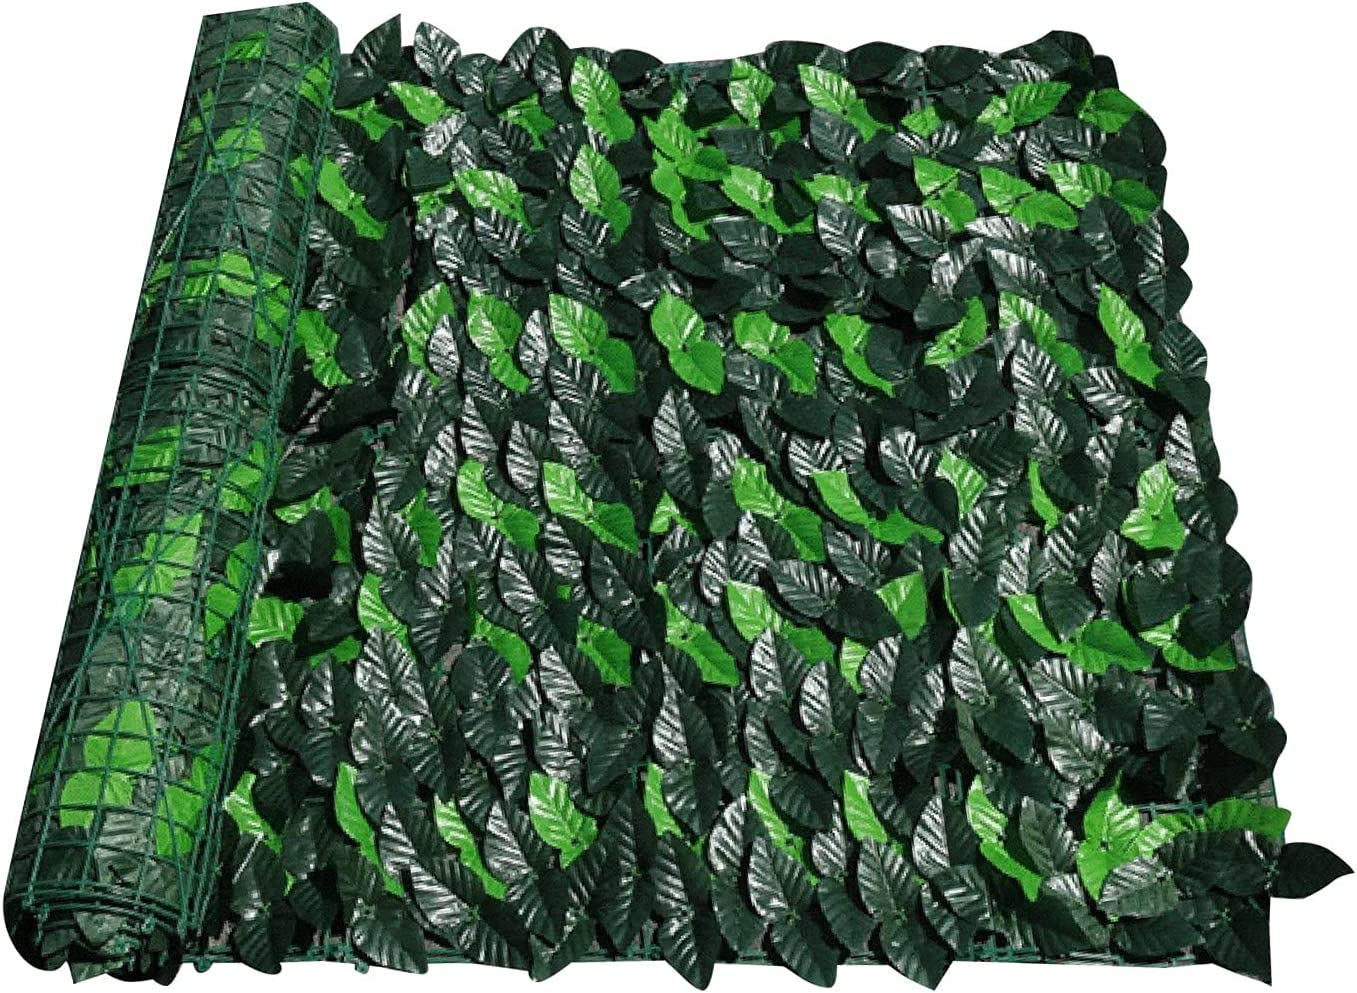 Artificial Ivy Max 67% OFF Privacy Year-end gift Fence Scree Screen Wall